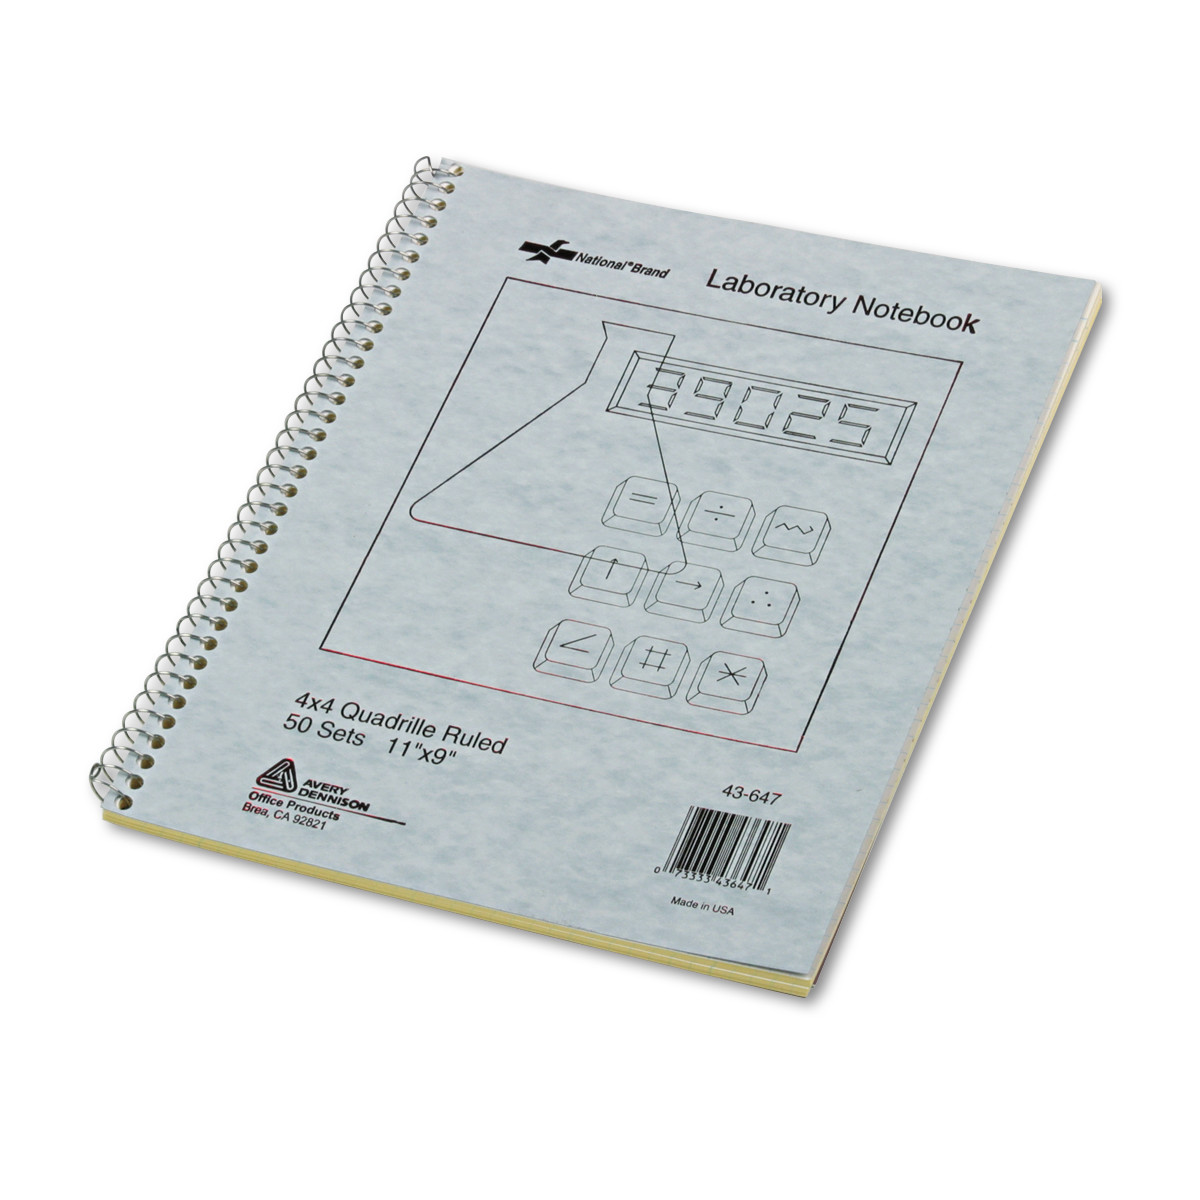 National Duplicate Lab Notebook, Quadrille Rule, 11 x 9, White/Yellow, 100 Sheets -RED43647